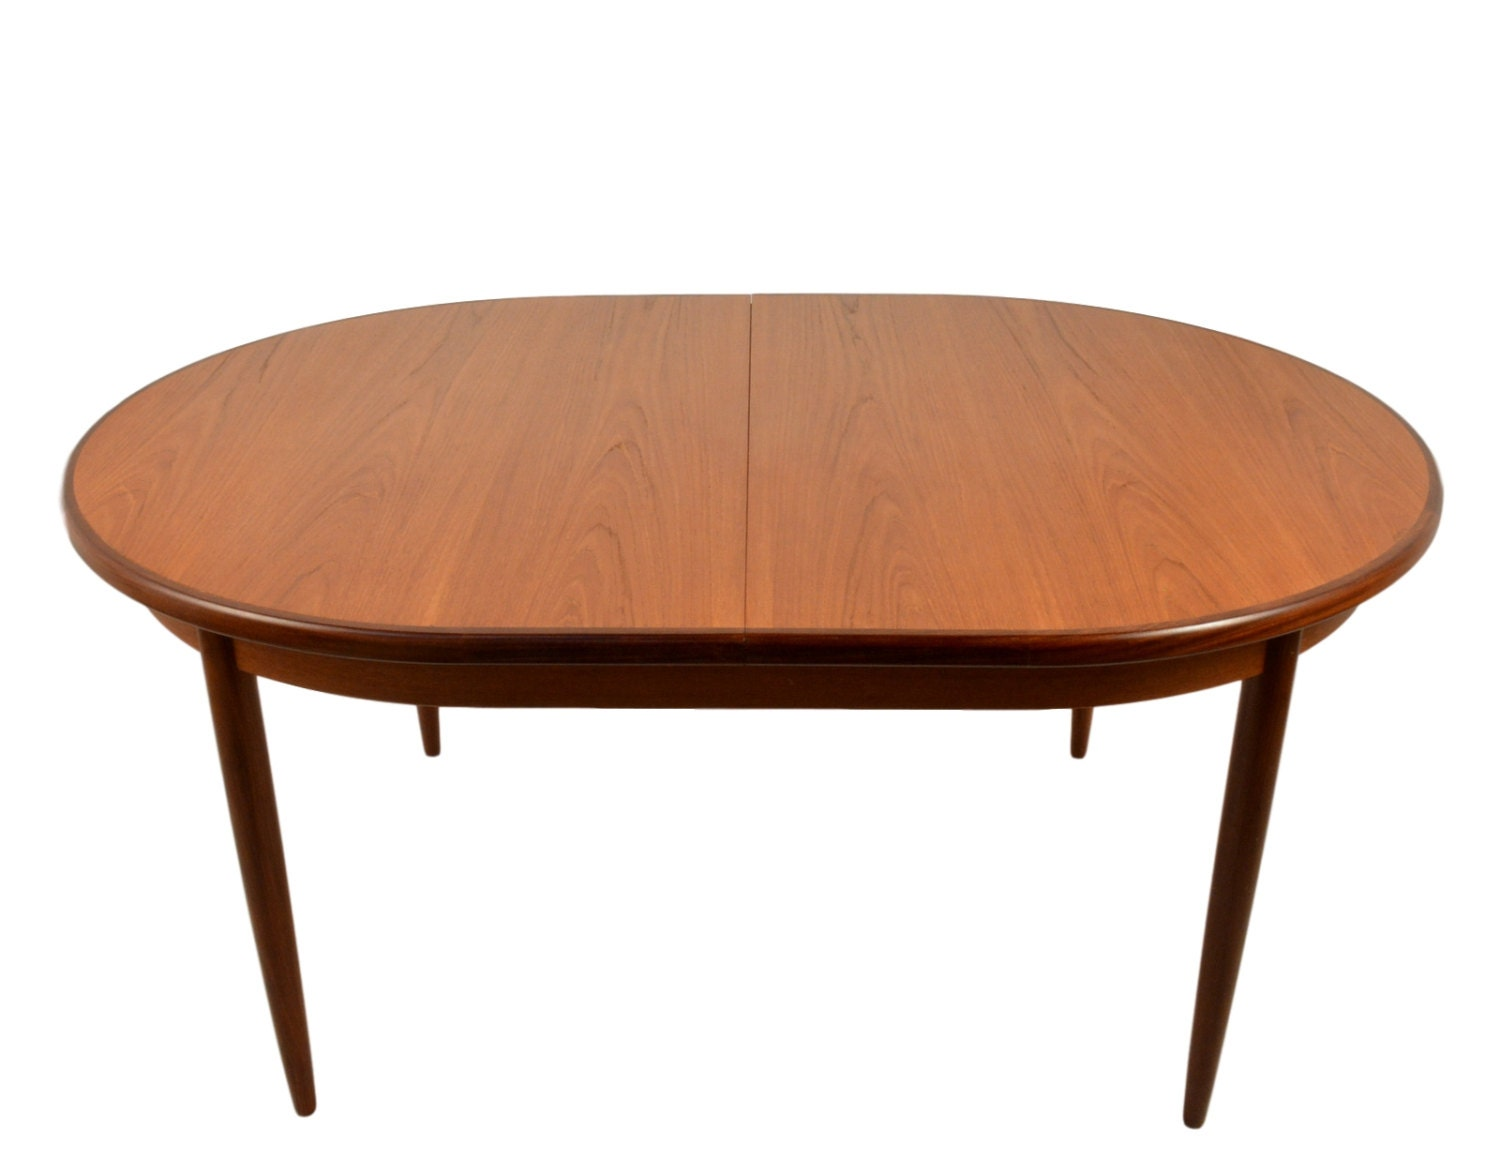 Modern Dining Table Plans: Mid Century Modern Extending Teak Dining Table By G Plan